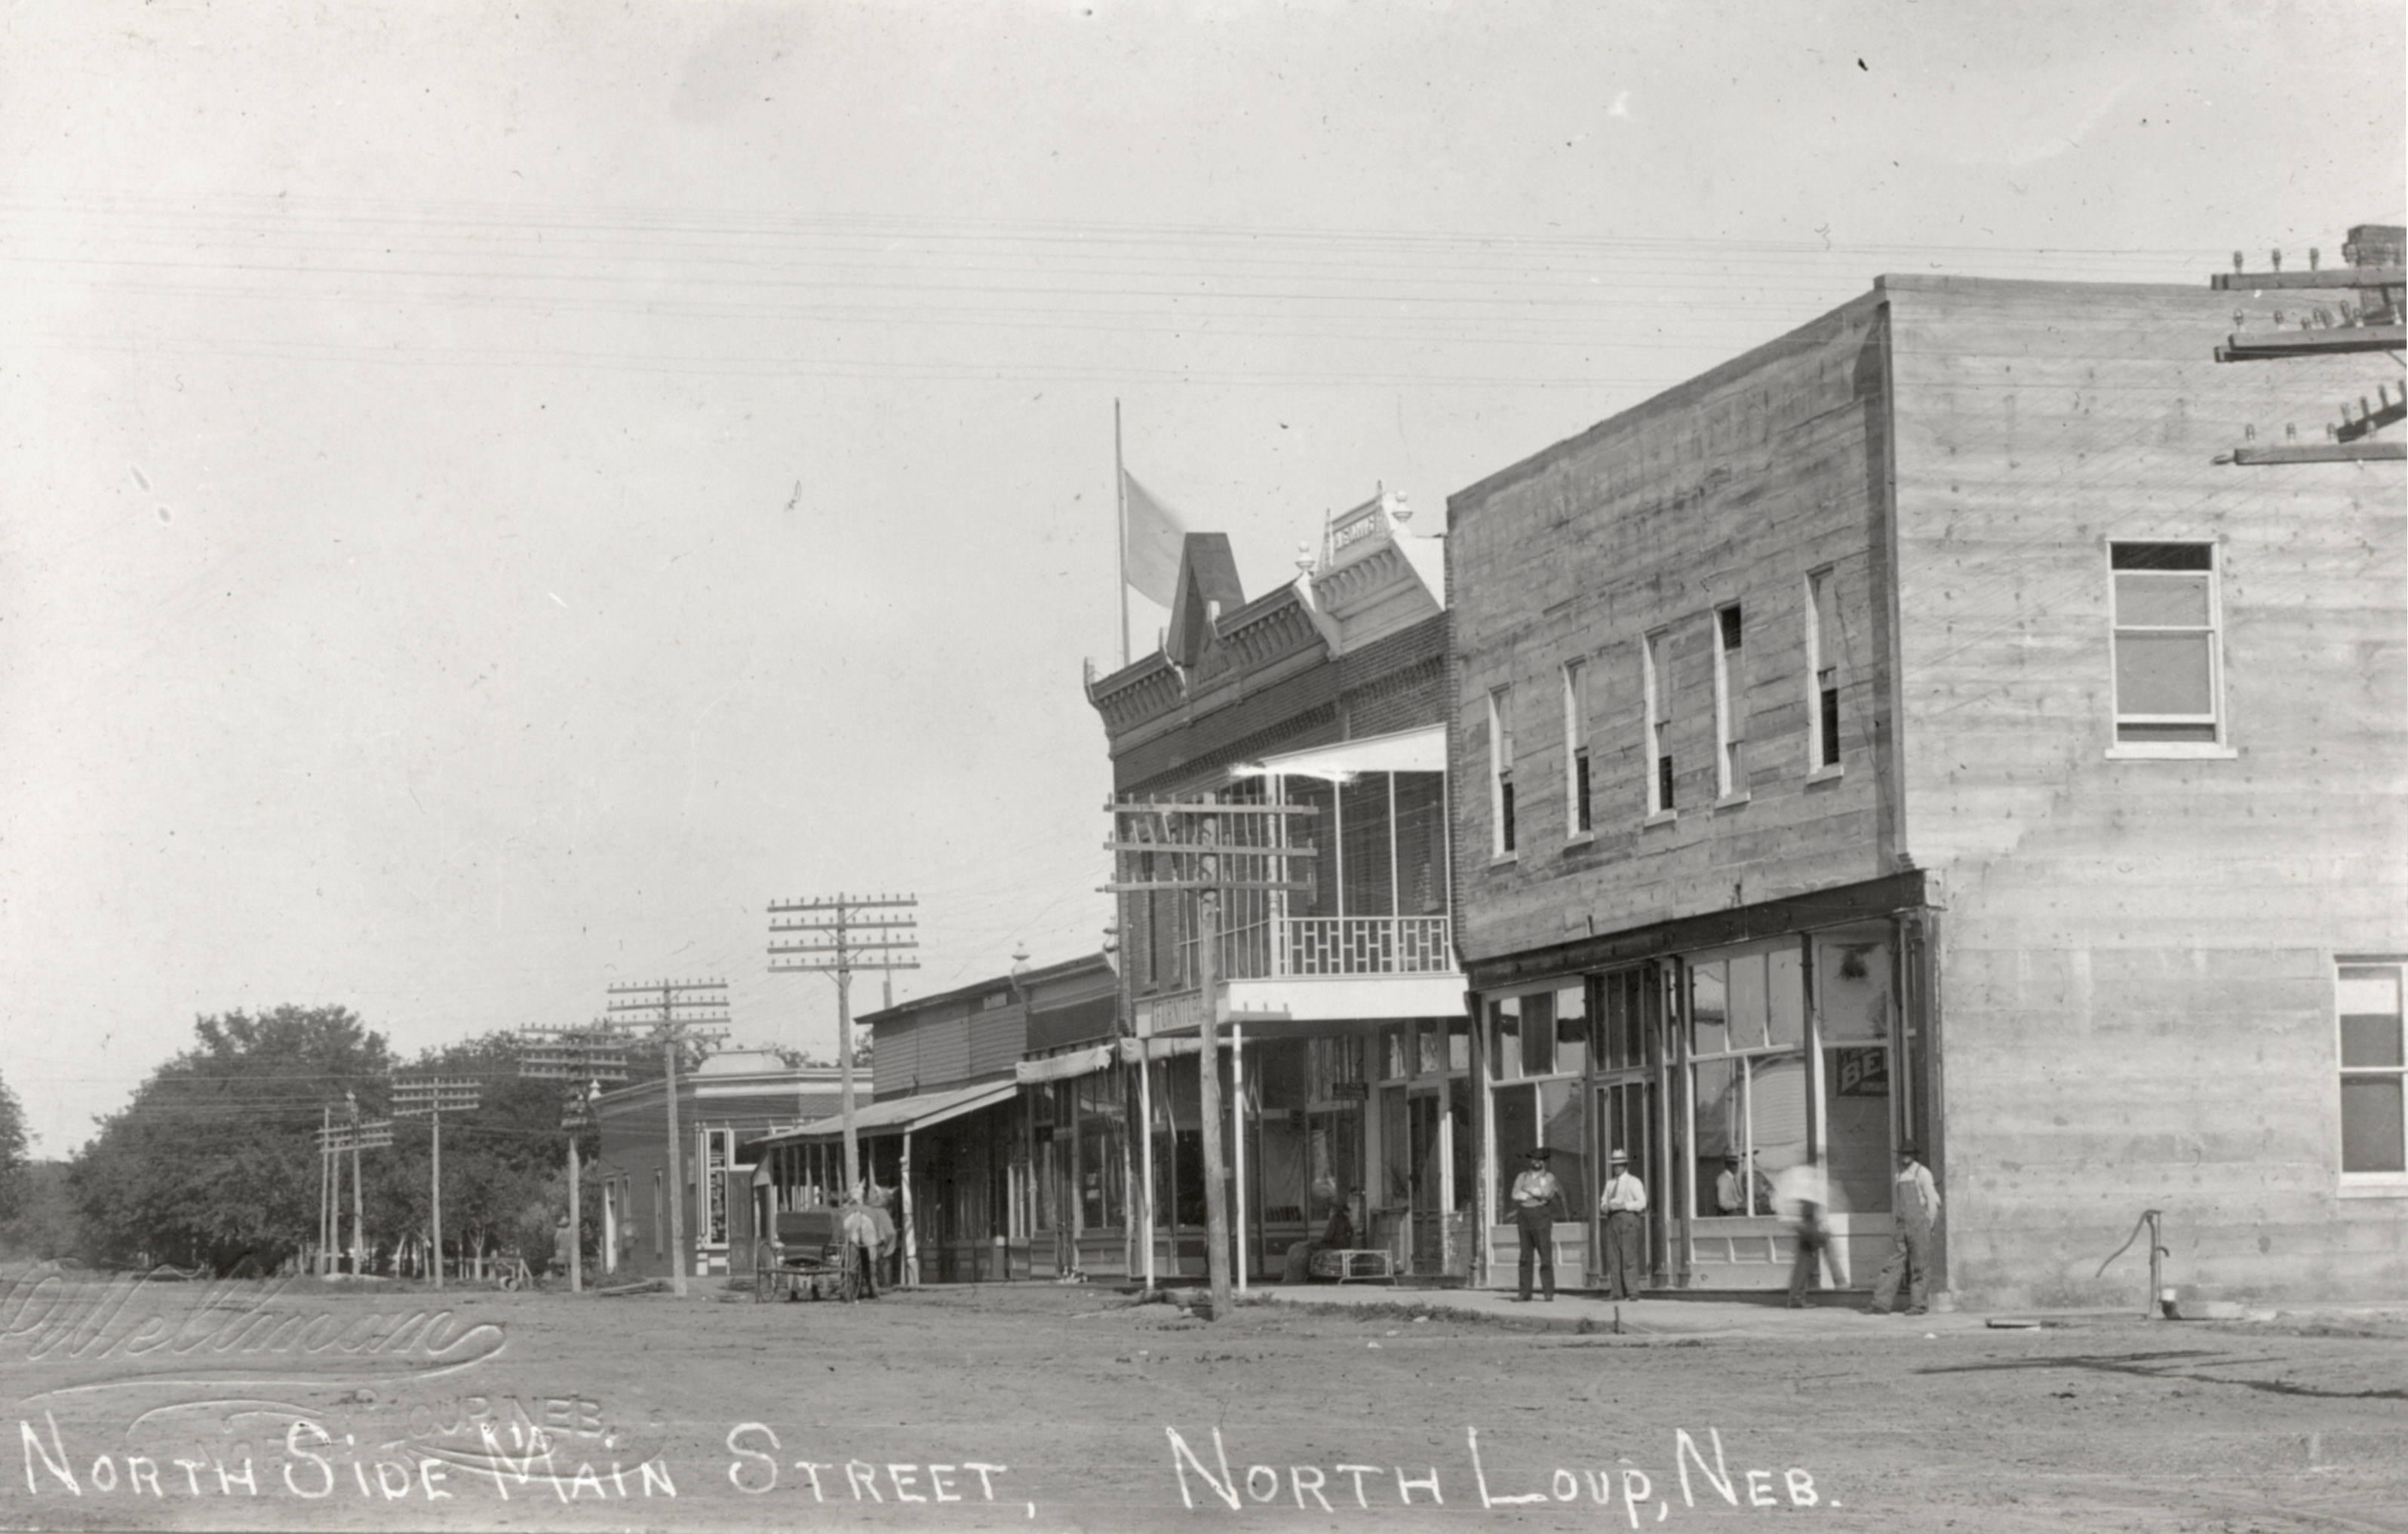 north loup Latest local news for north loup, ne : local news for north loup, ne continually updated from thousands of sources on the web.